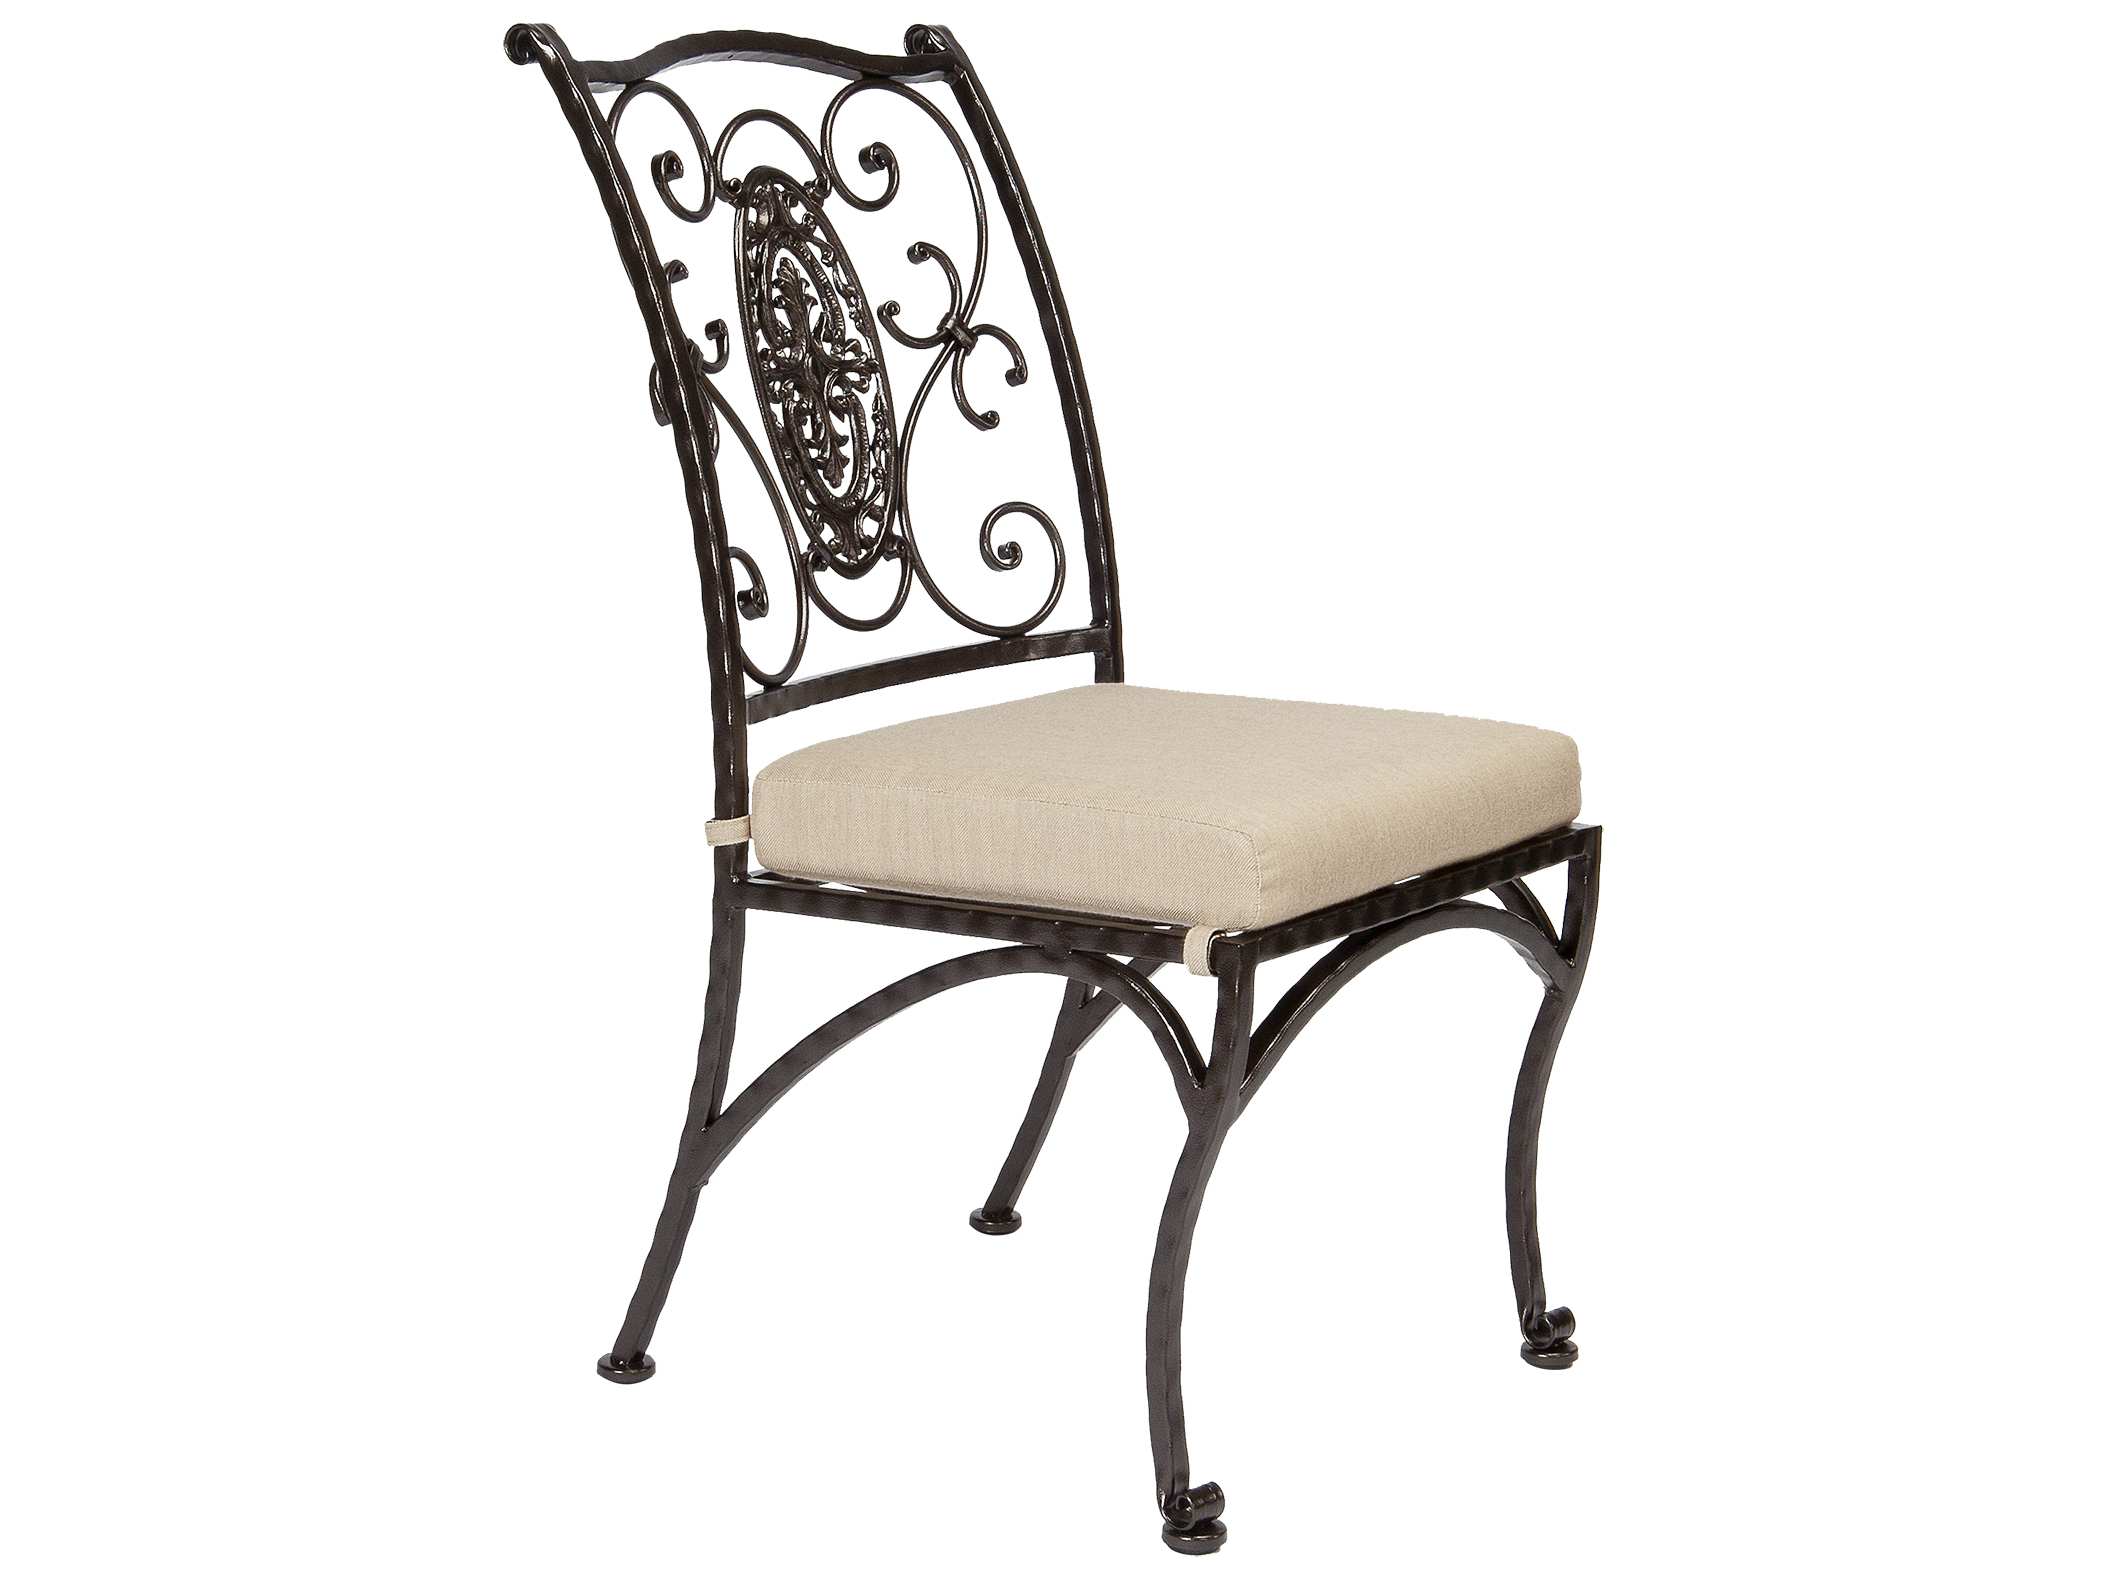 OW Lee San Cristobal Wrought Iron Dining Side Chair 651 S : OW651S2zm from www.patioliving.com size 2103 x 1578 jpeg 149kB